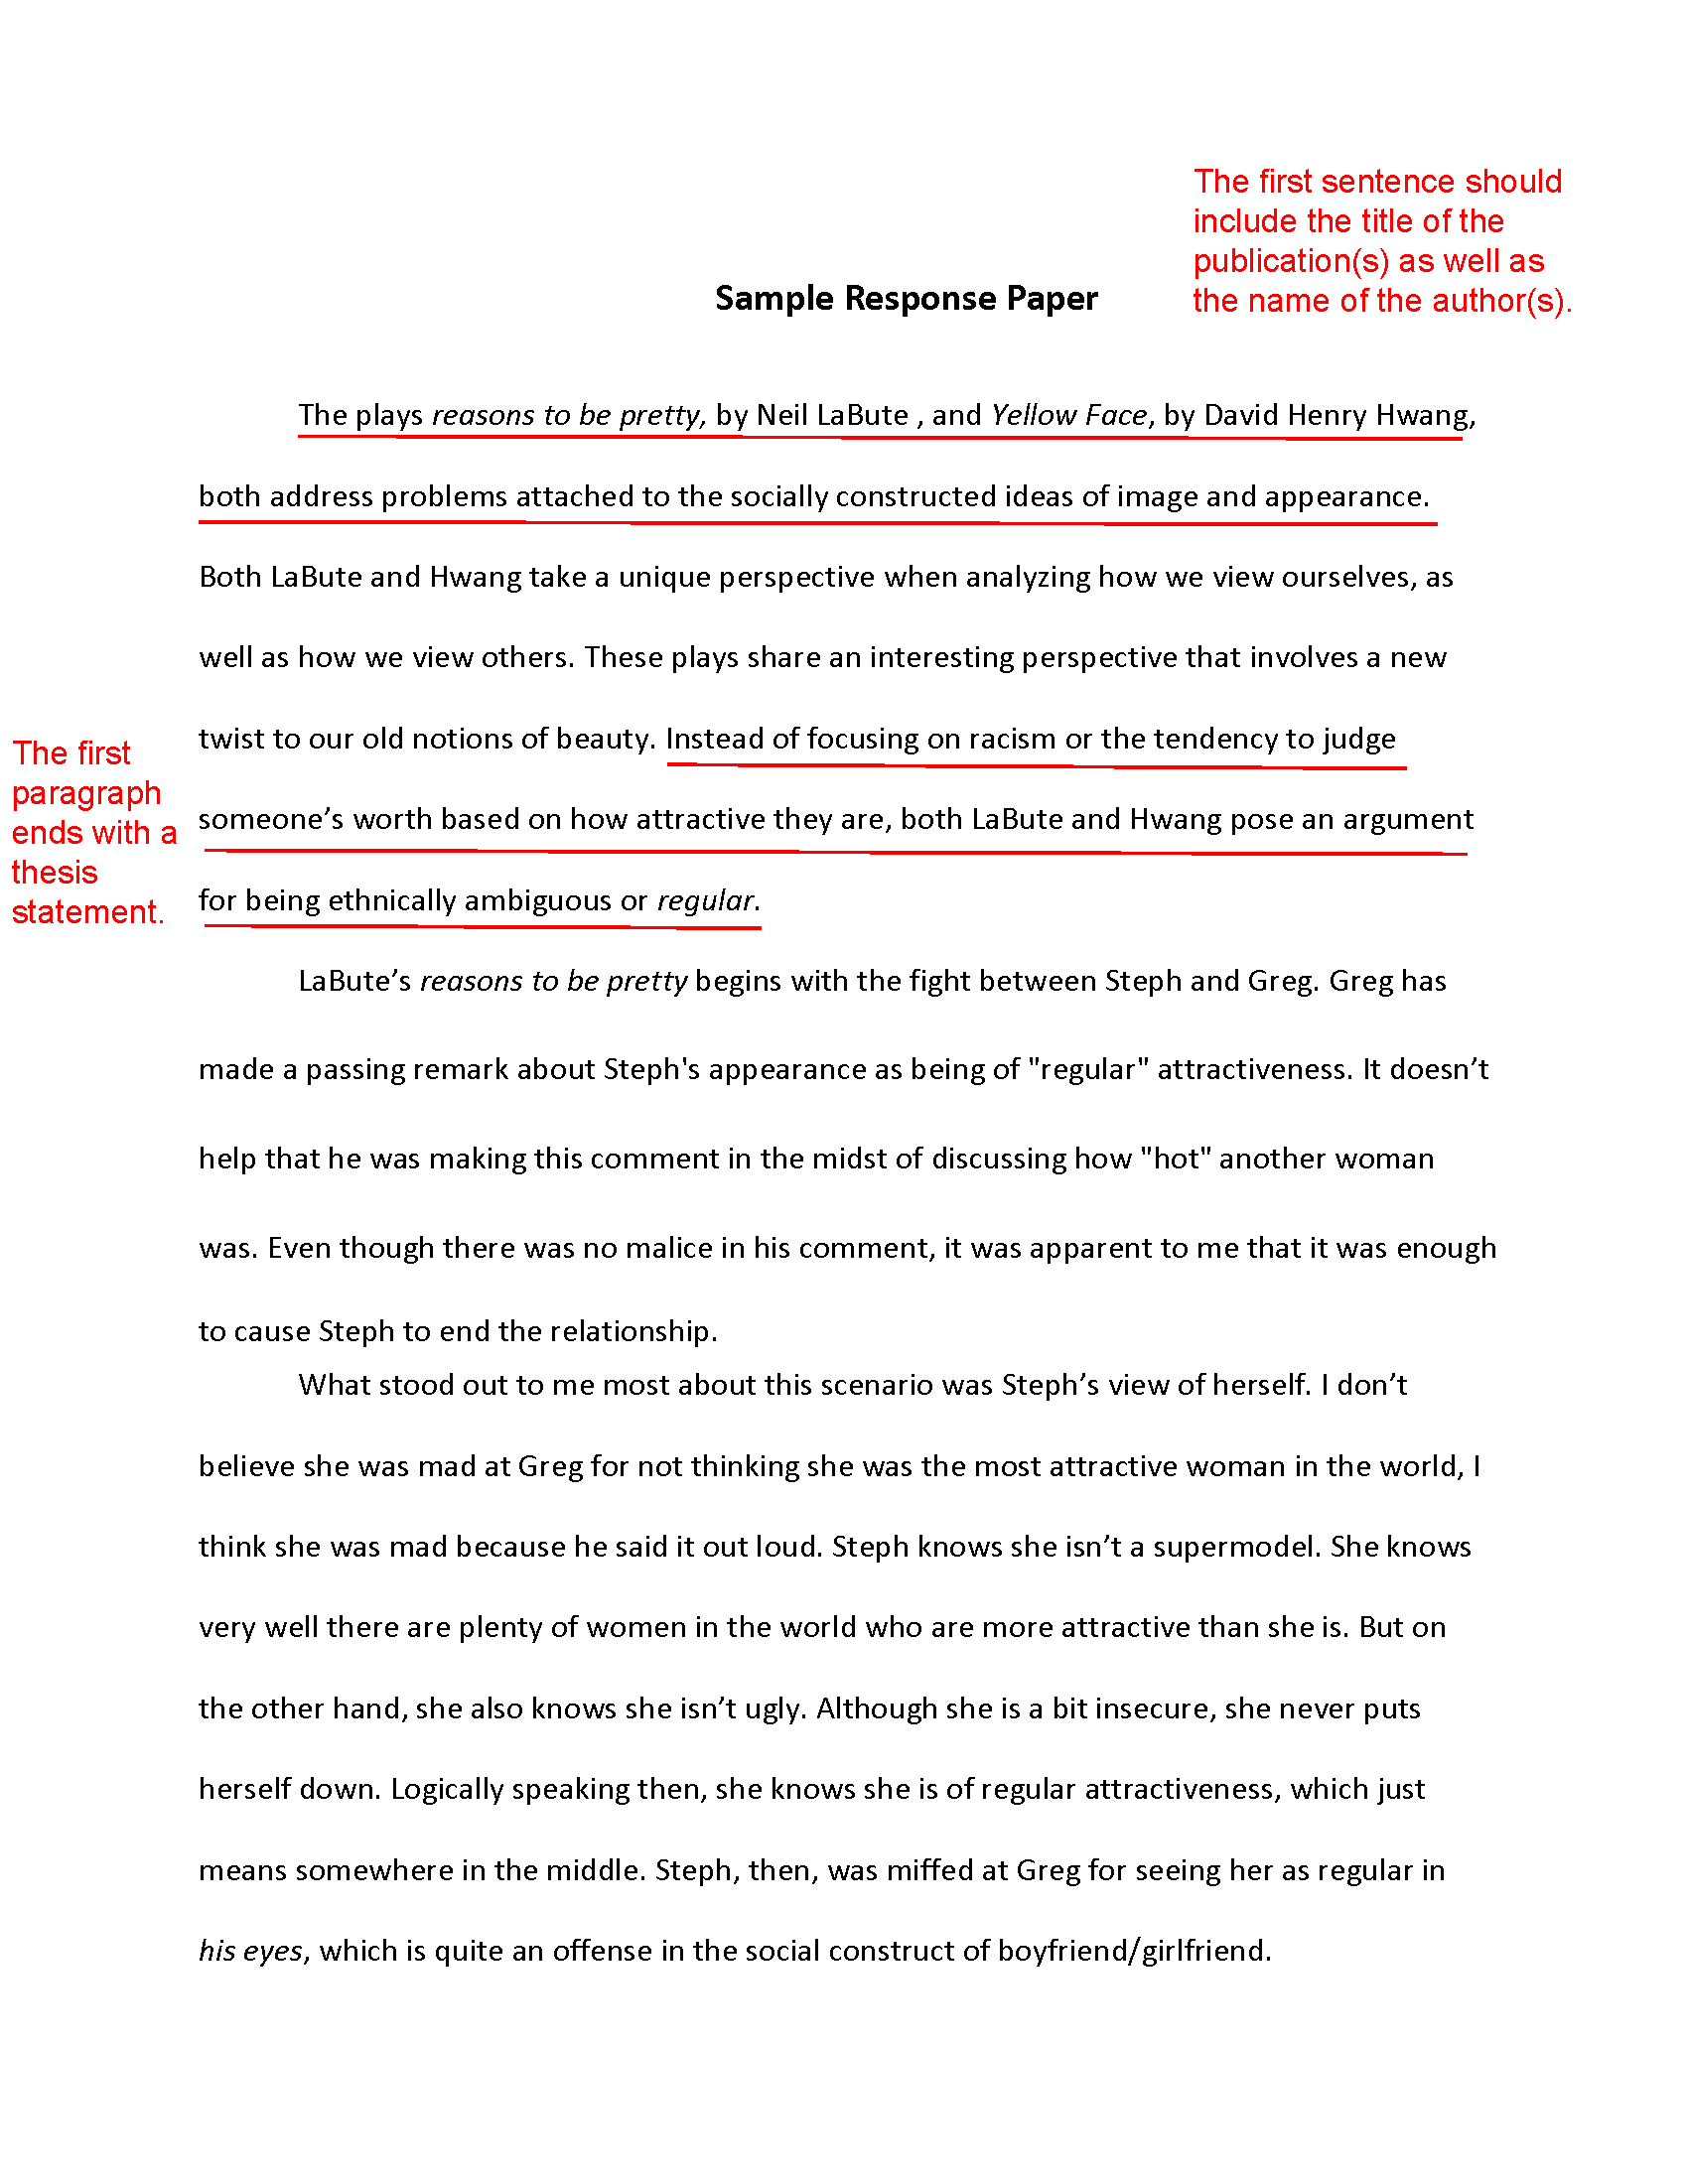 how to write a response paper - Critical Response Essay Format